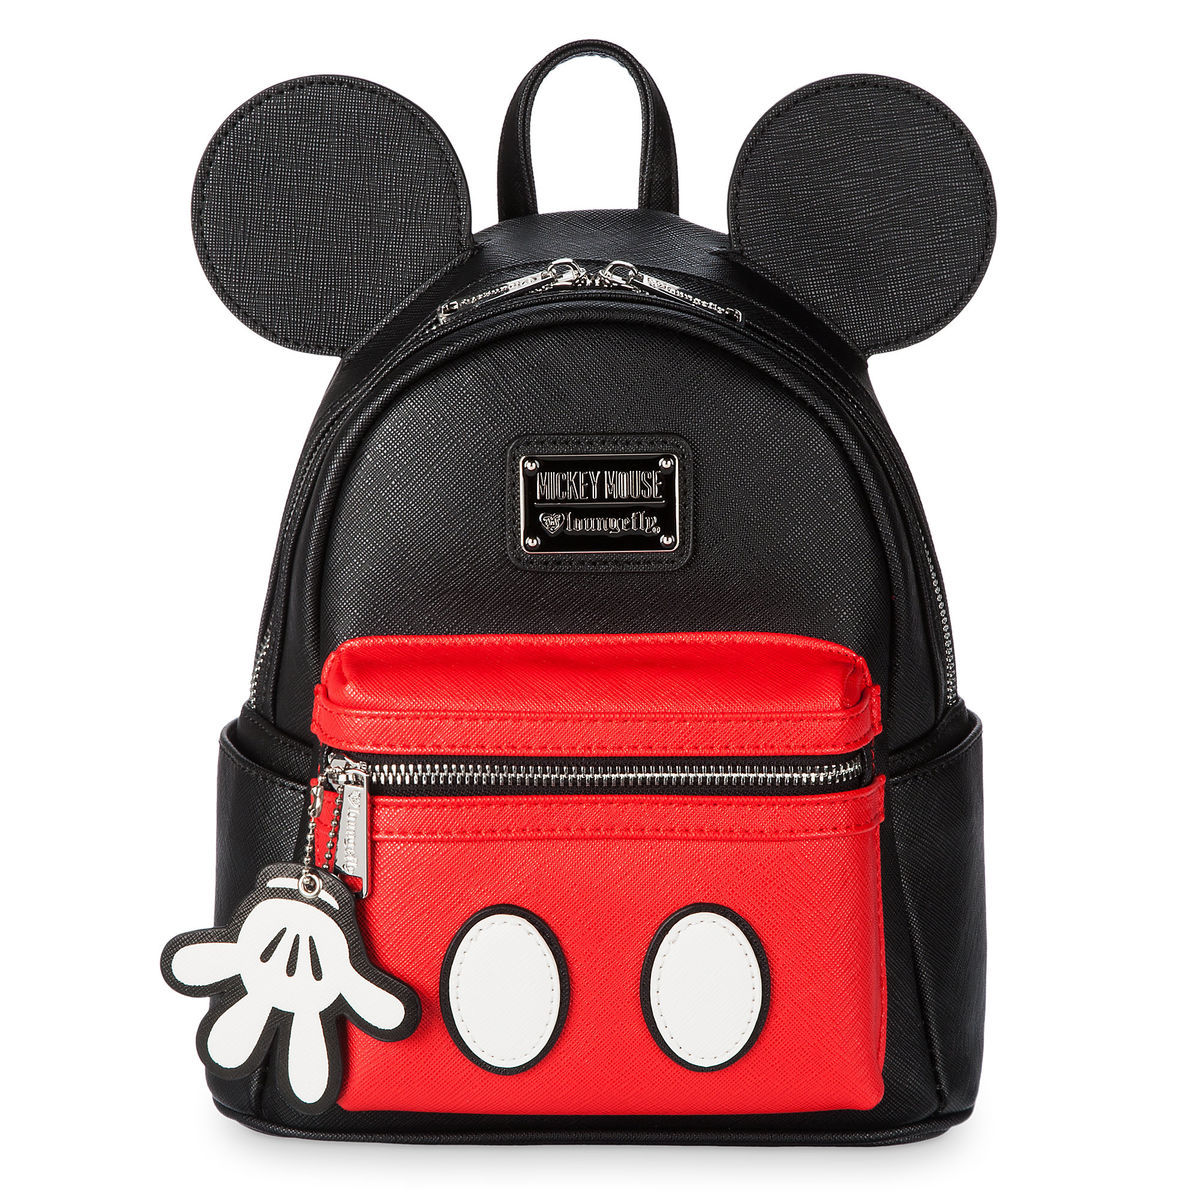 39b864d9f441 Product Image of Mickey Mouse Mini Backpack by Loungefly   1